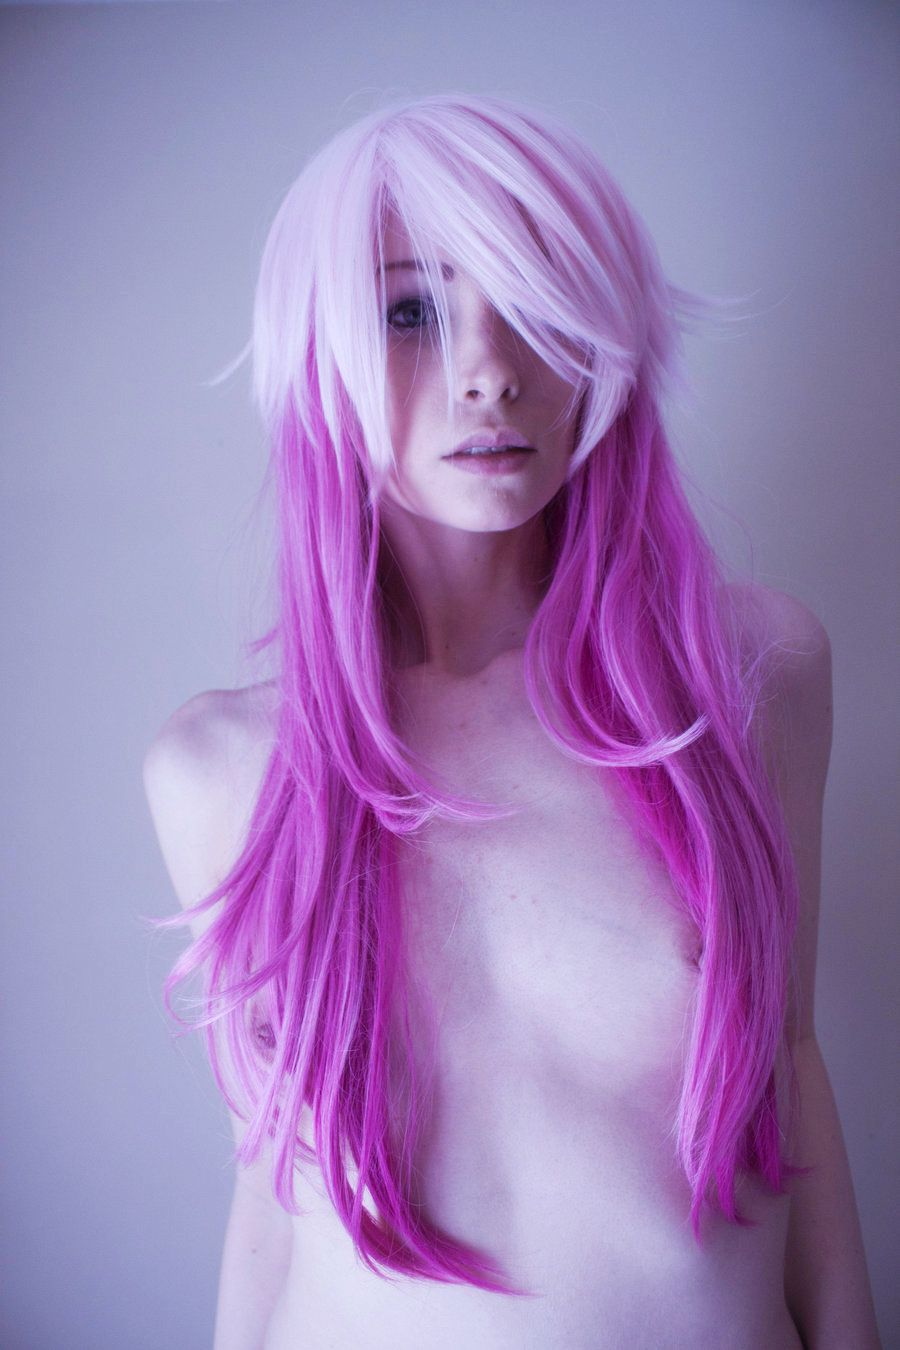 Girls with pink hair naked Anime Hair Pink Hair Beauty Hair